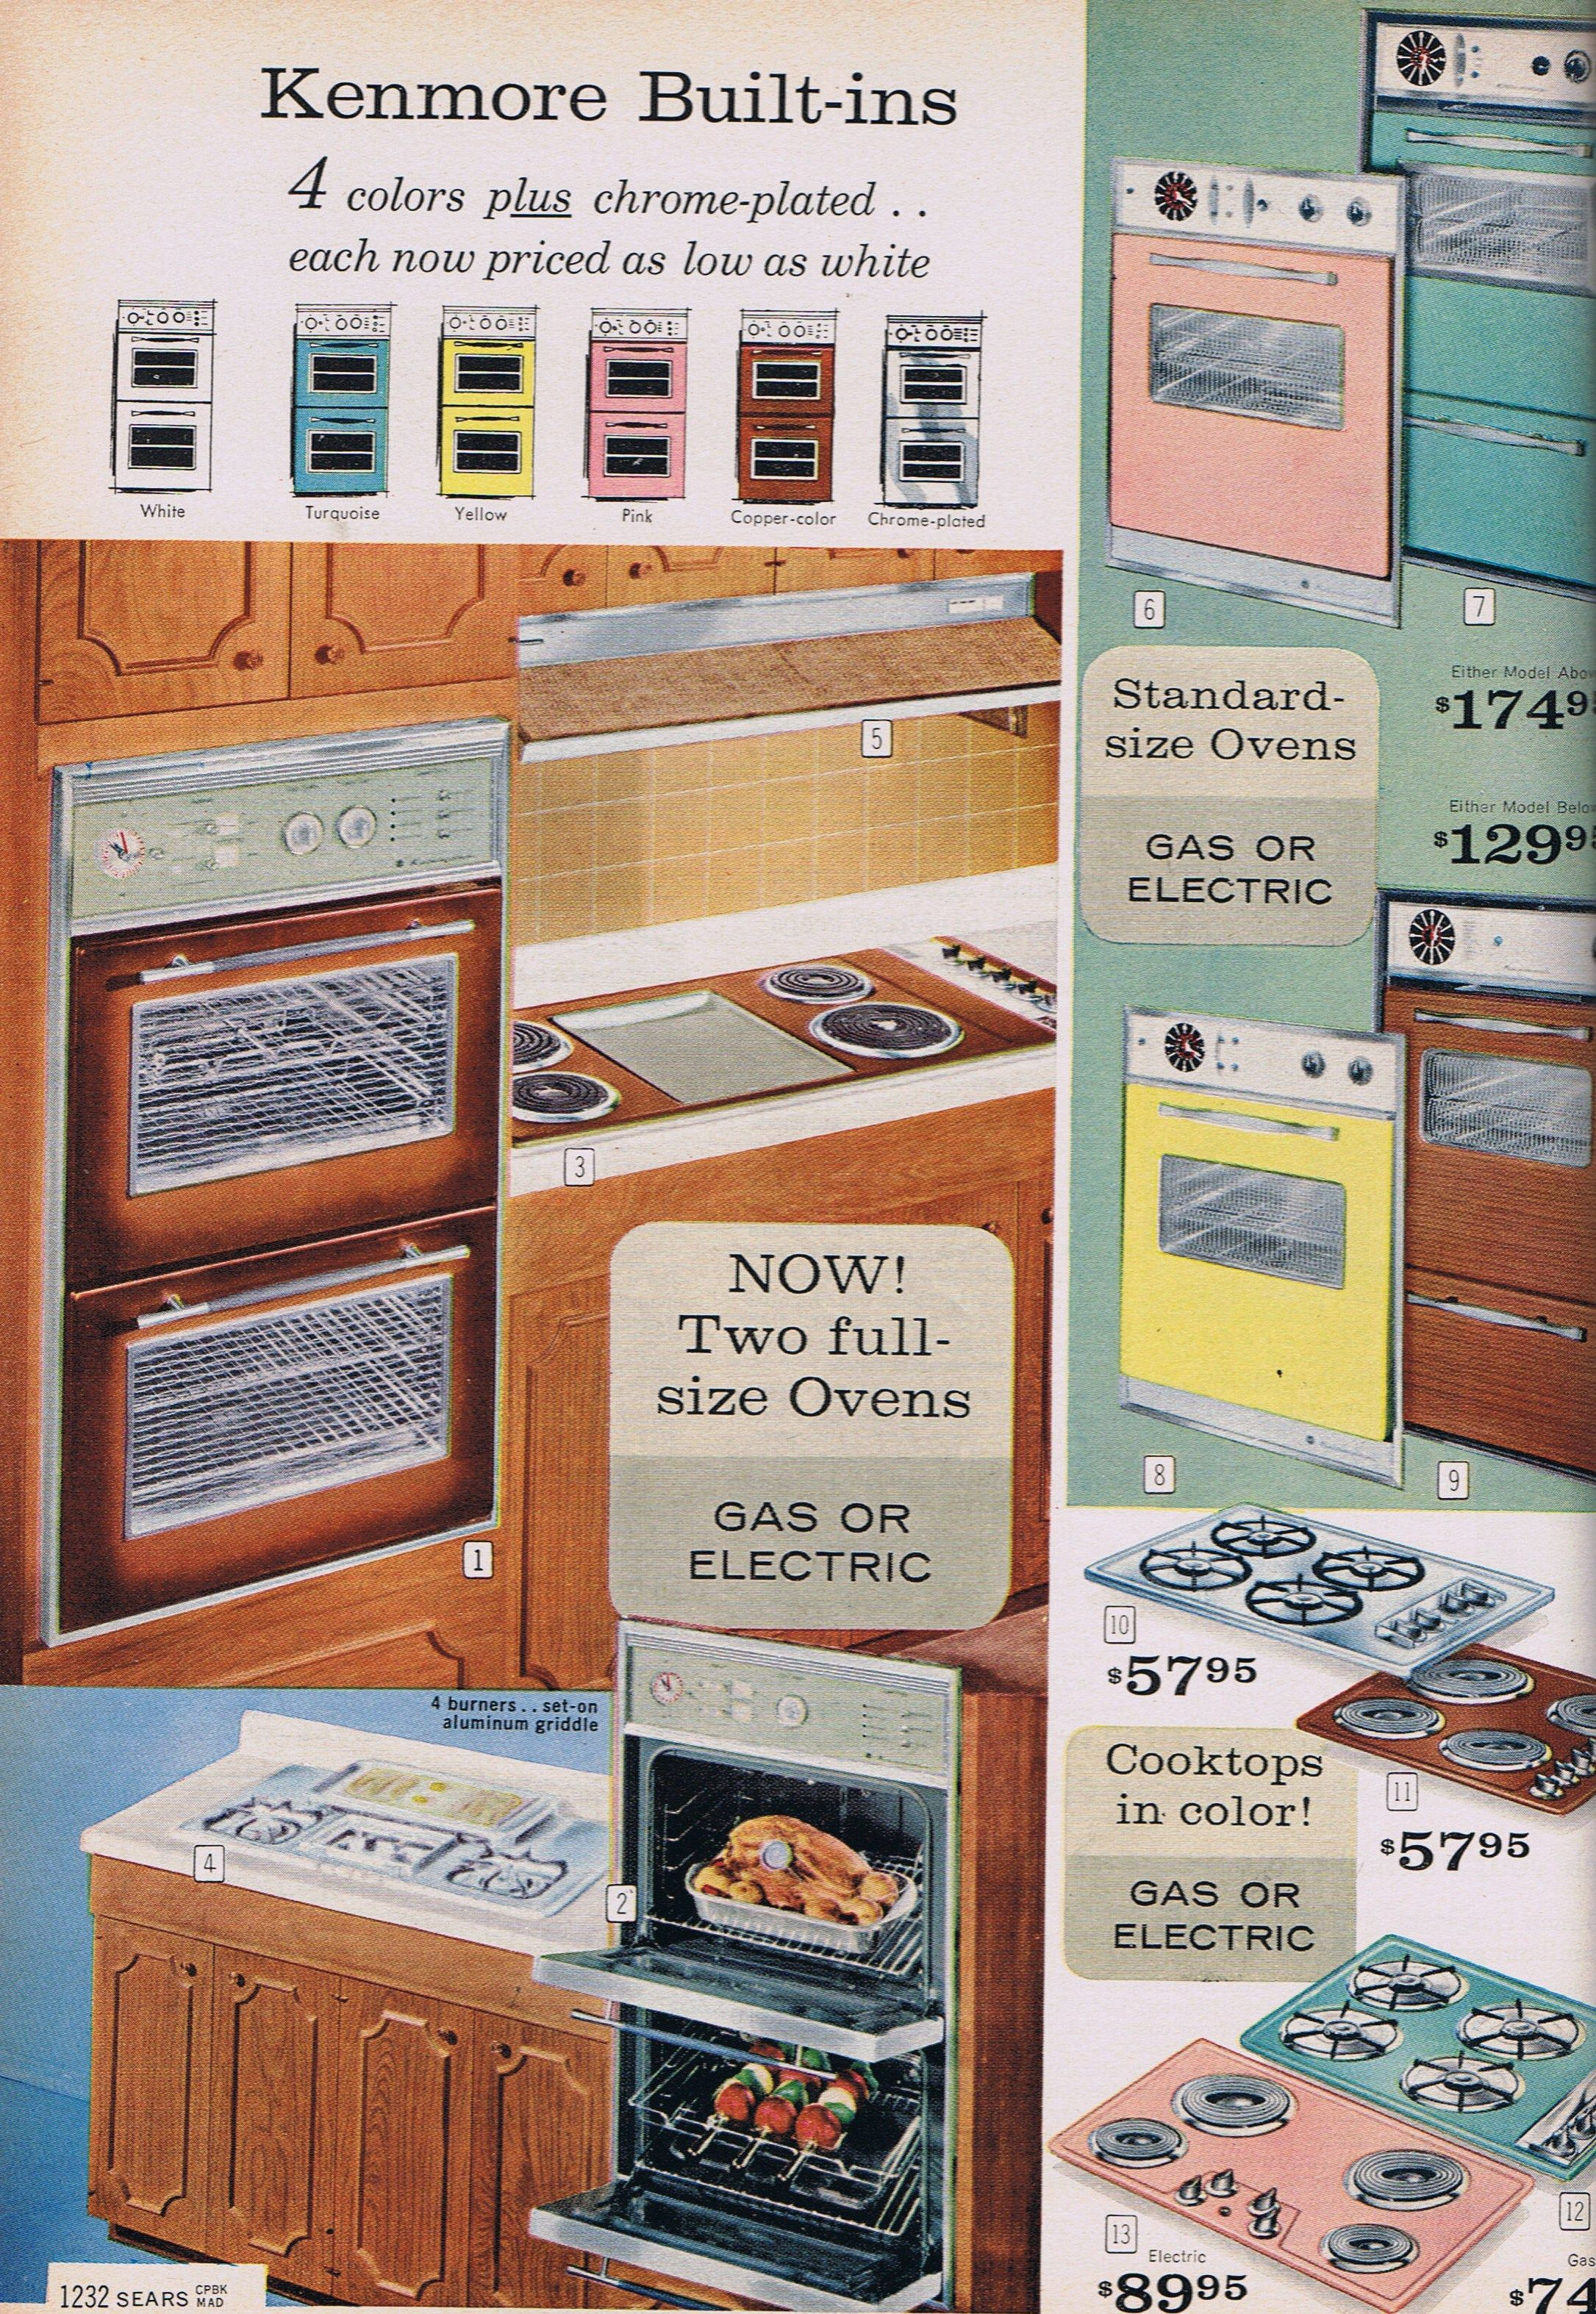 Kenmore Built-In Ovens and Ranges - Sears,1963 ... wonderful ...